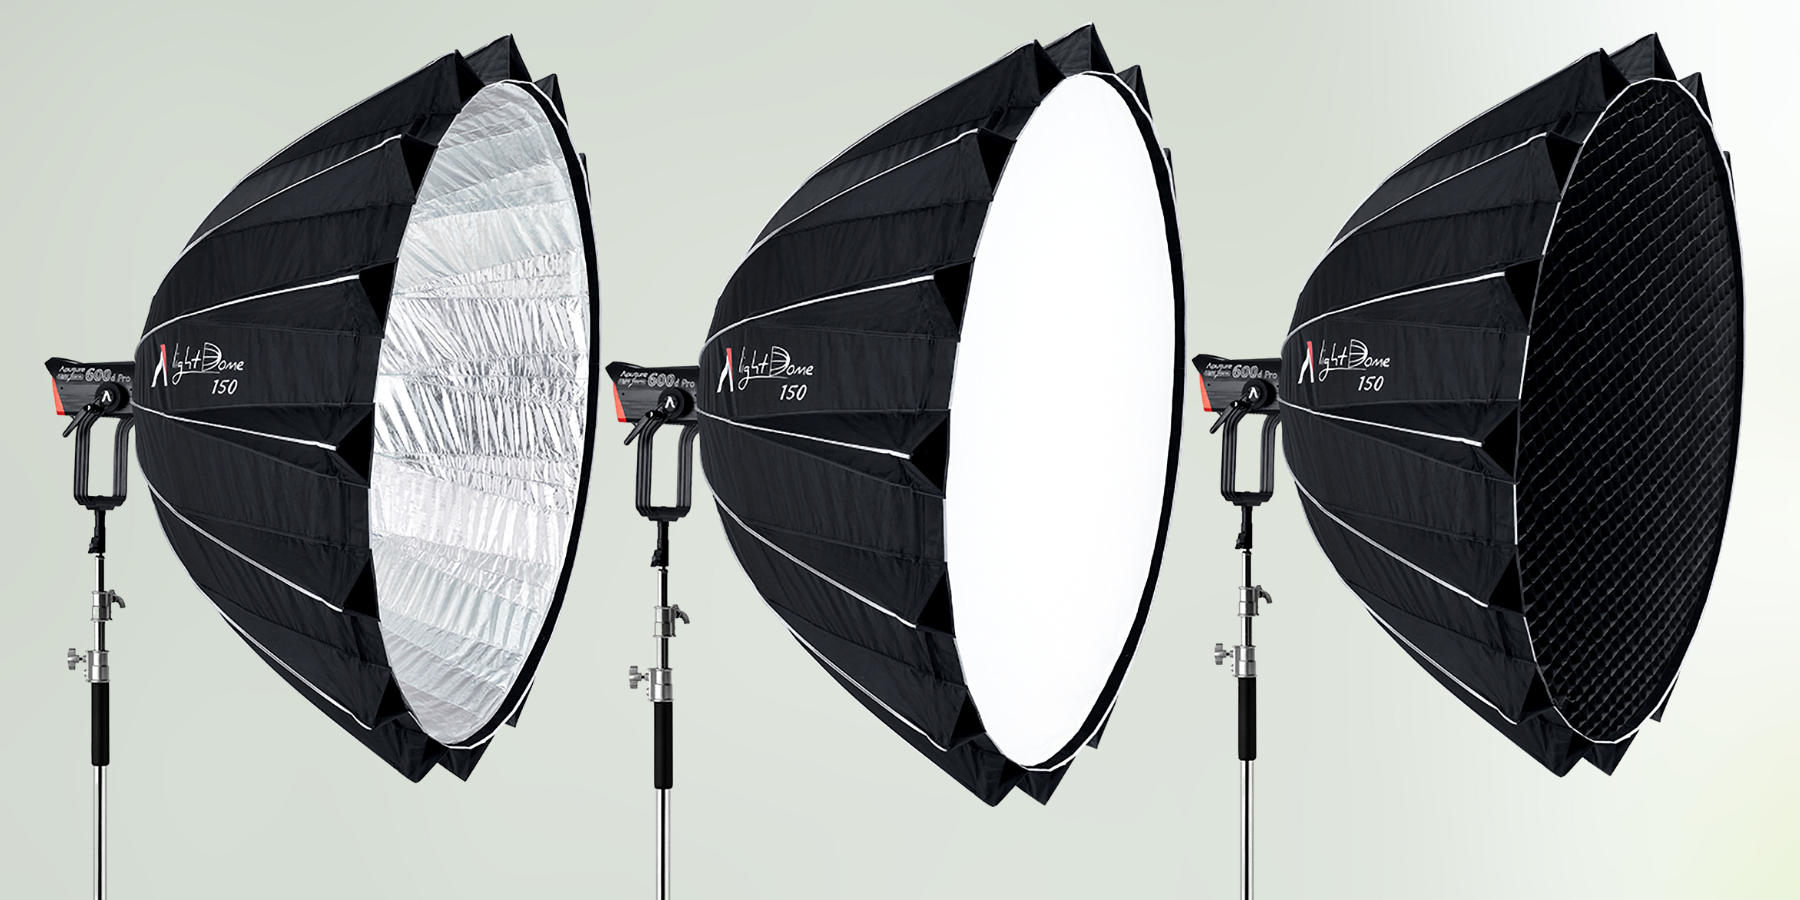 Aputure Light Dome 150 Softbox in Silver Interior (Left), White (Middle) and 45-Degree Fabric Grid (Right)